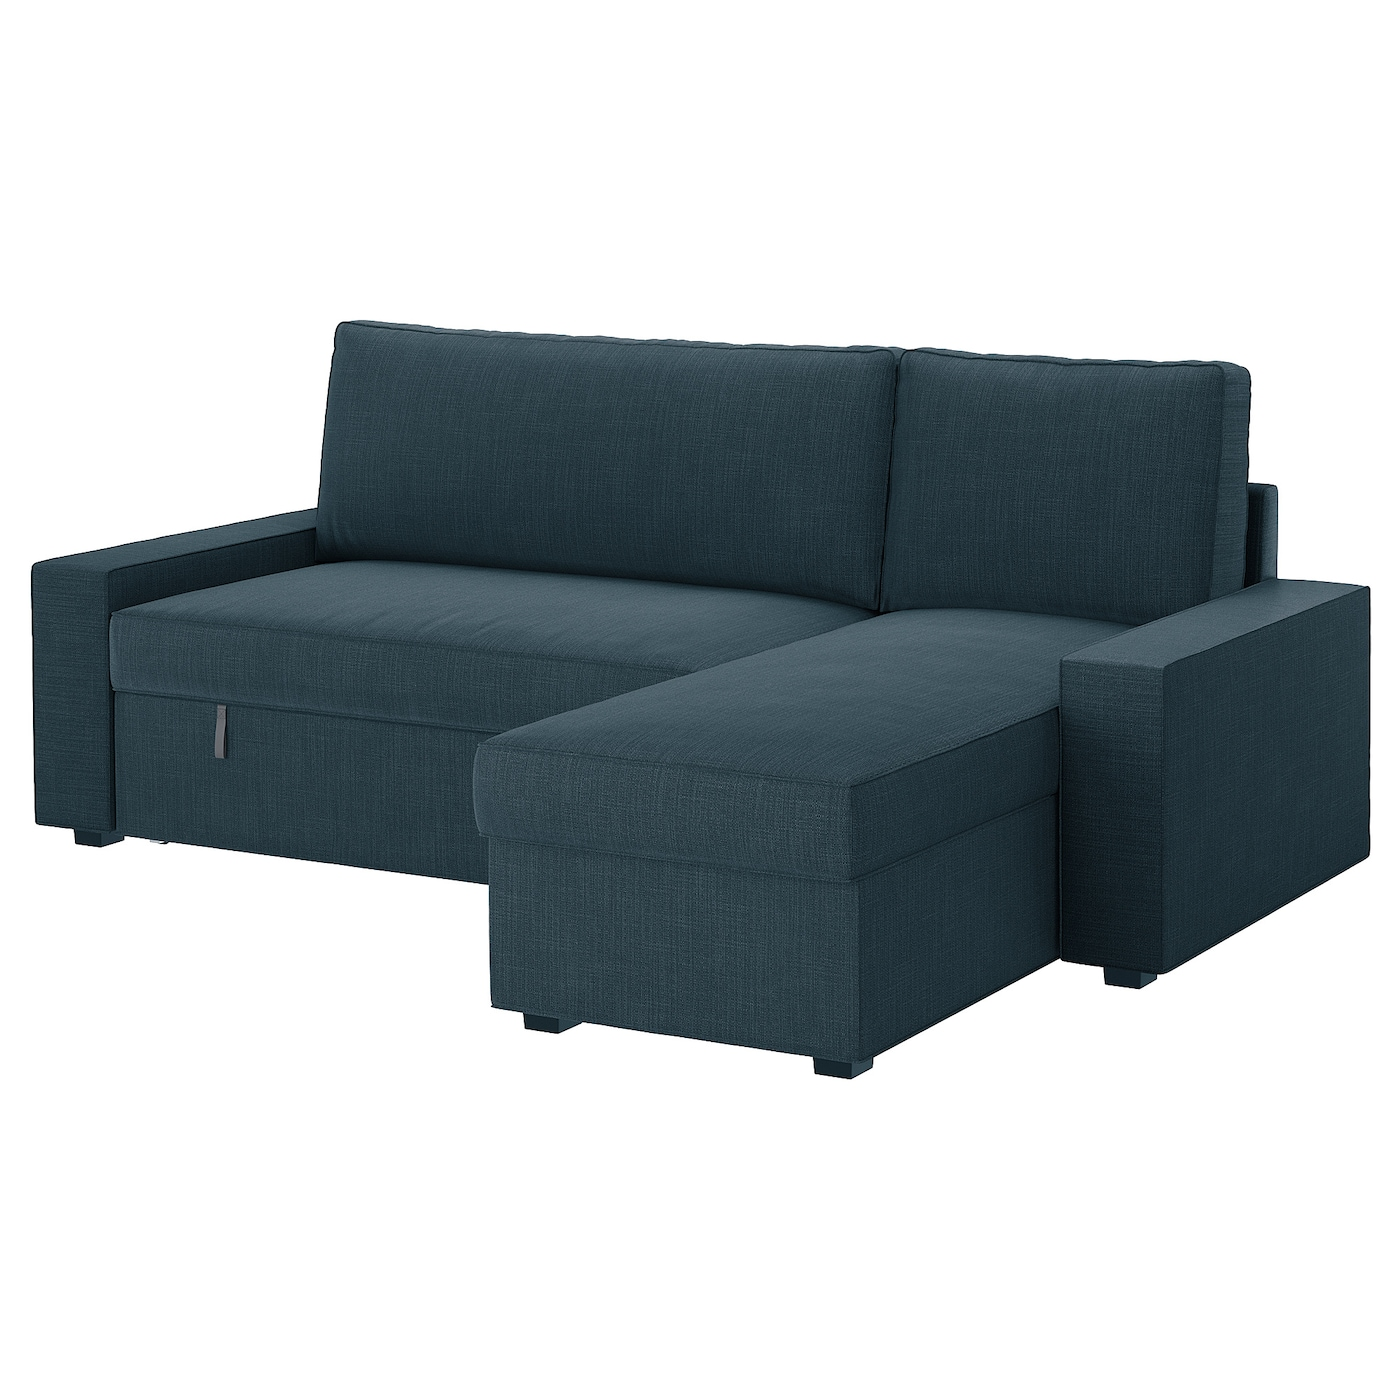 VILASUND Sofa bed with chaise longue Hillared dark blue IKEA